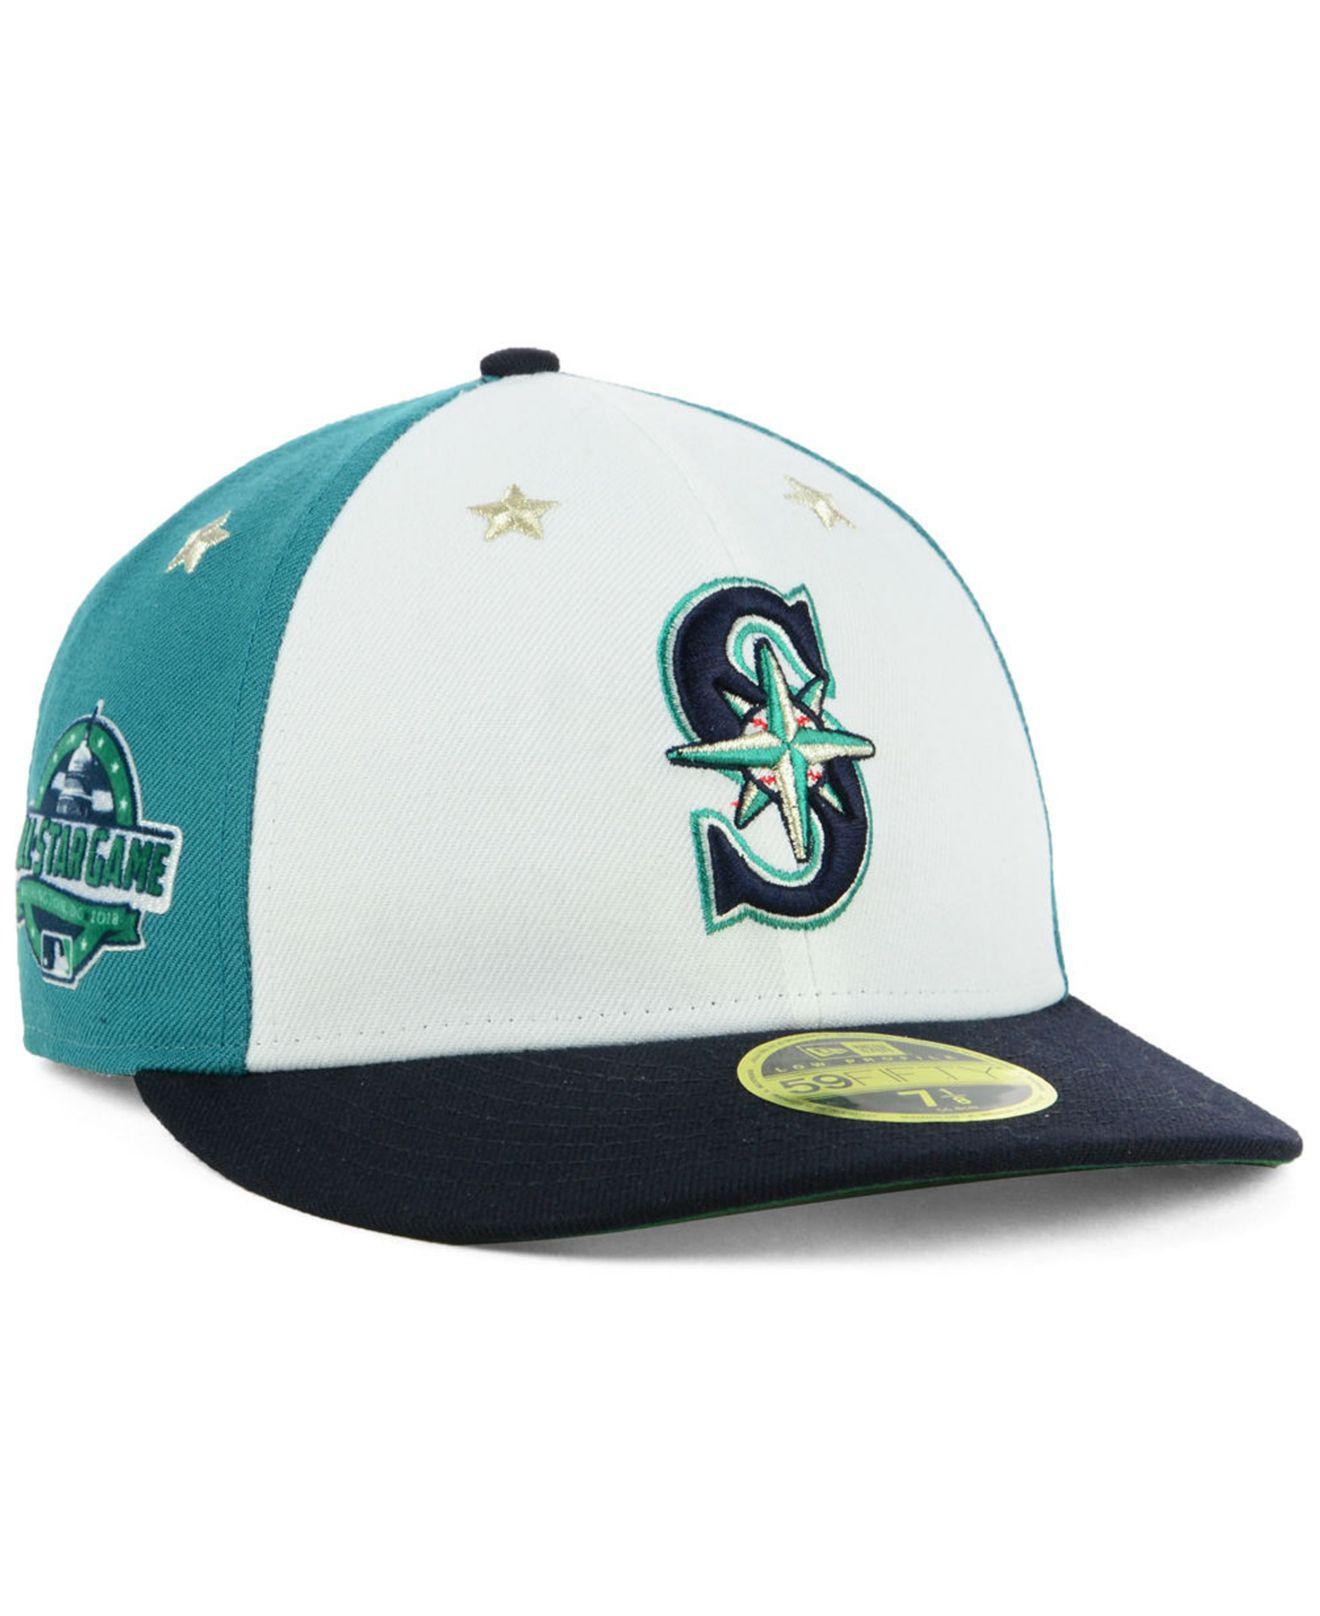 Lyst - KTZ Seattle Mariners All Star Game Patch Low Profile 59fifty ... 5fd9d3e28132